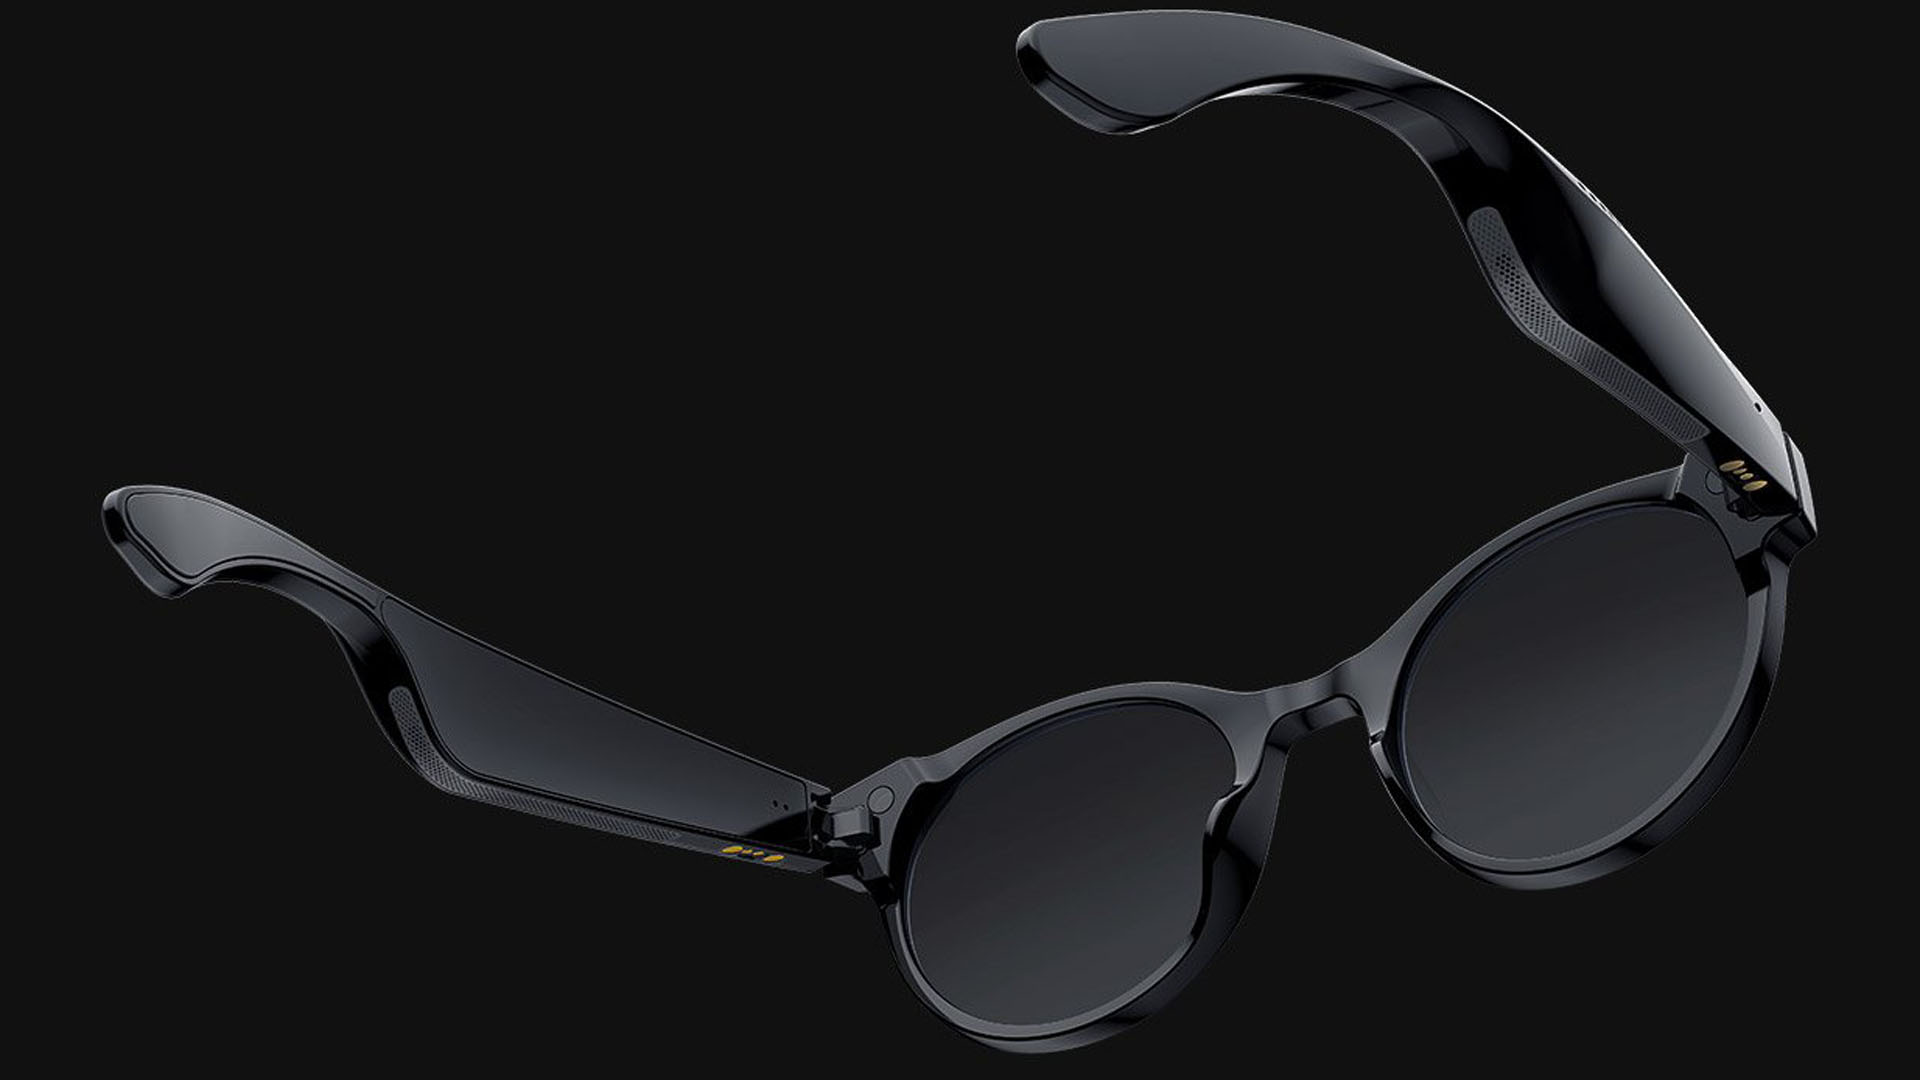 Razer's Bluetooth glasses are cheaper than Bose's and come with interchangeable lenses thumbnail